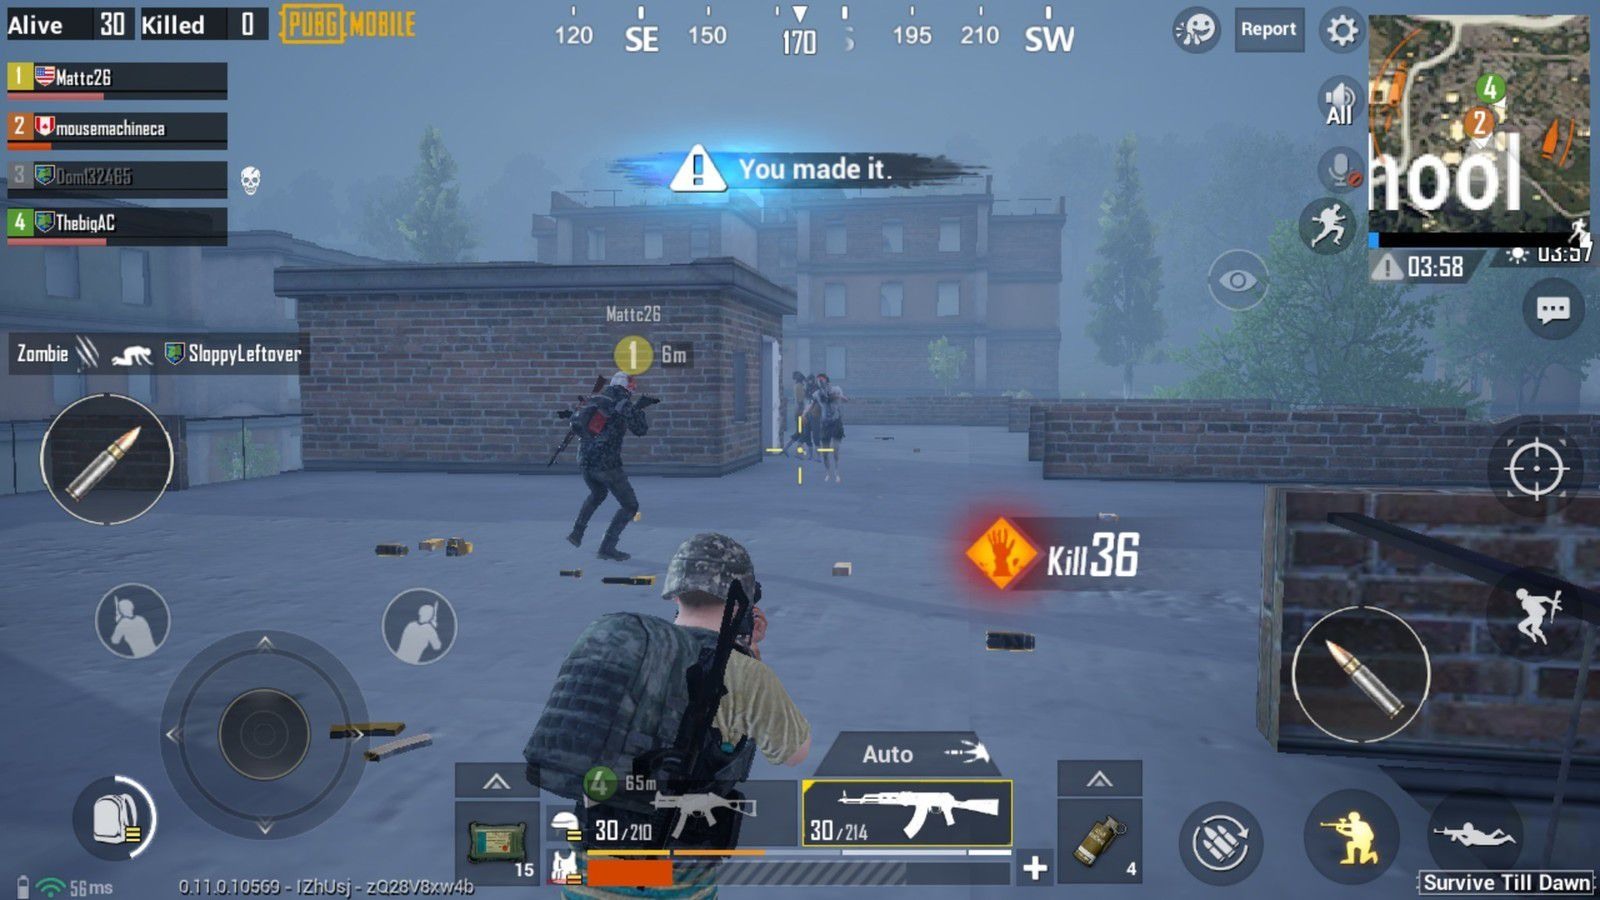 how to delete pubg account on iphone